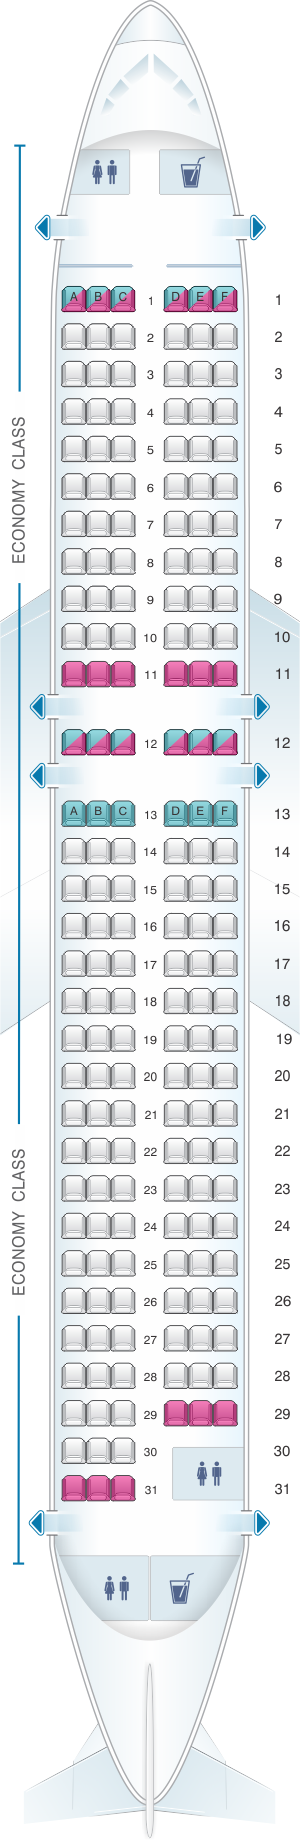 Seat map for Easyjet Airbus A320